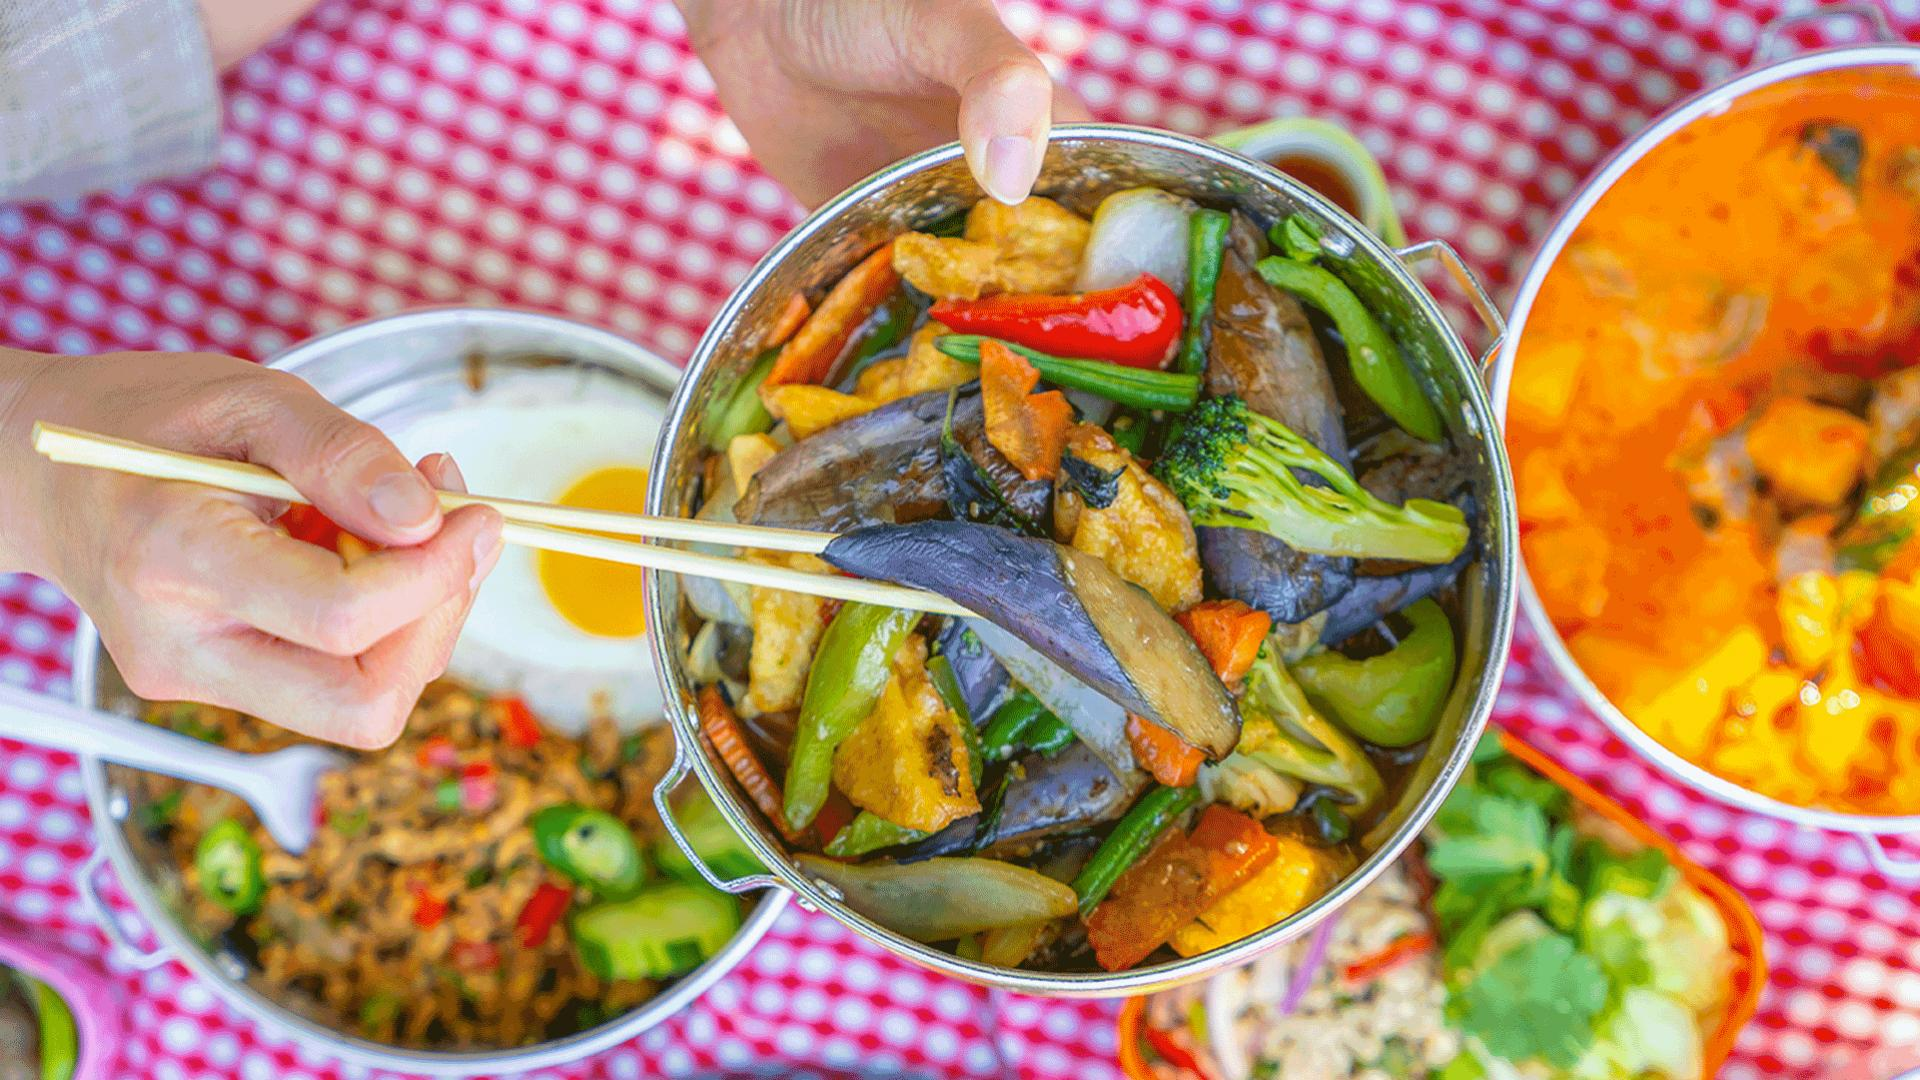 Must-try picnic baskets from Toronto restaurants   Vegetable dish from Jatujak